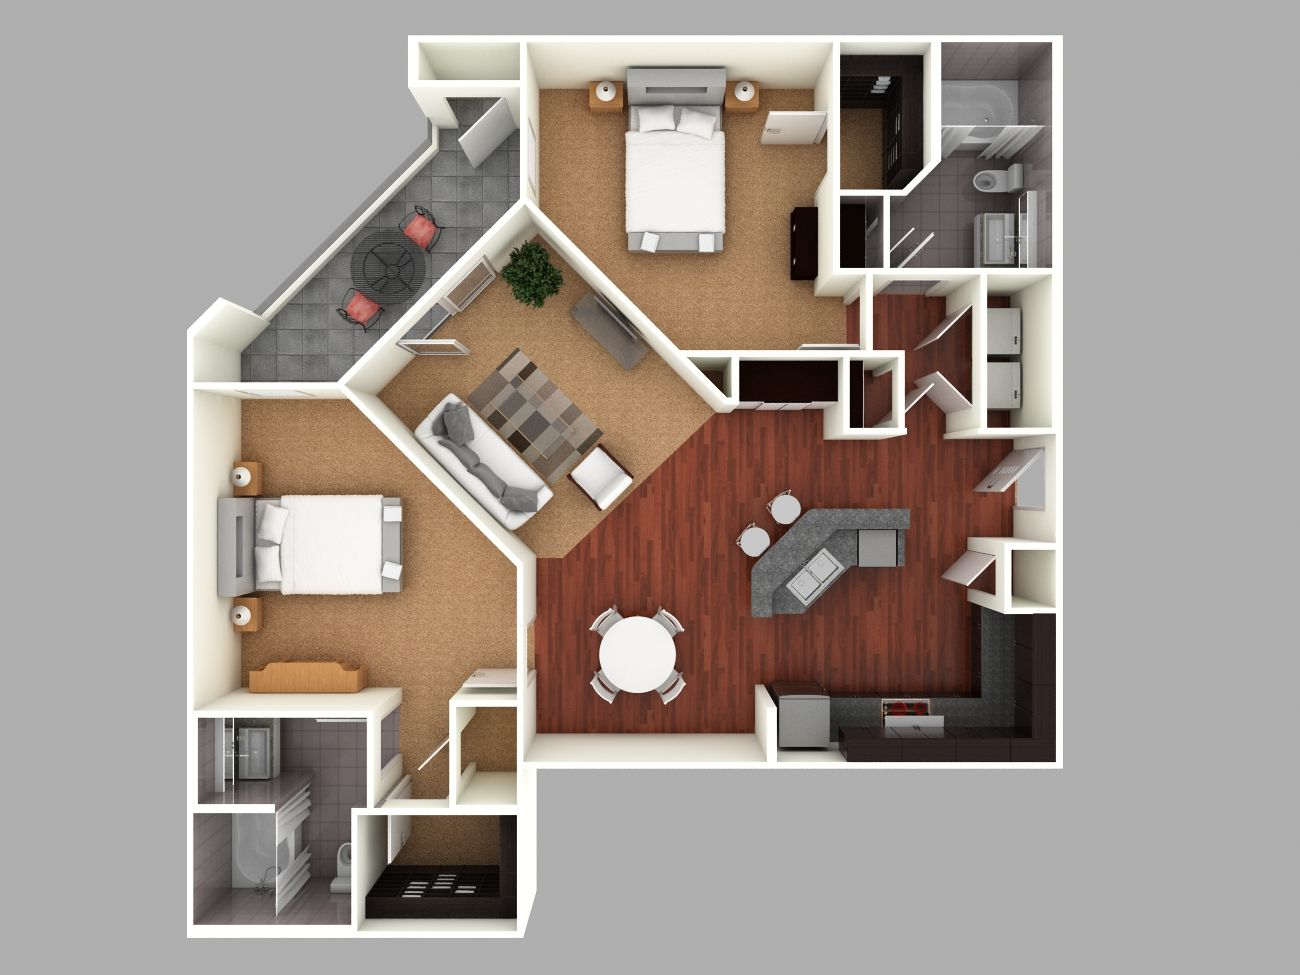 3d Home Floor Plan 3d cgi design floor plan 3d Colored Floor Plan